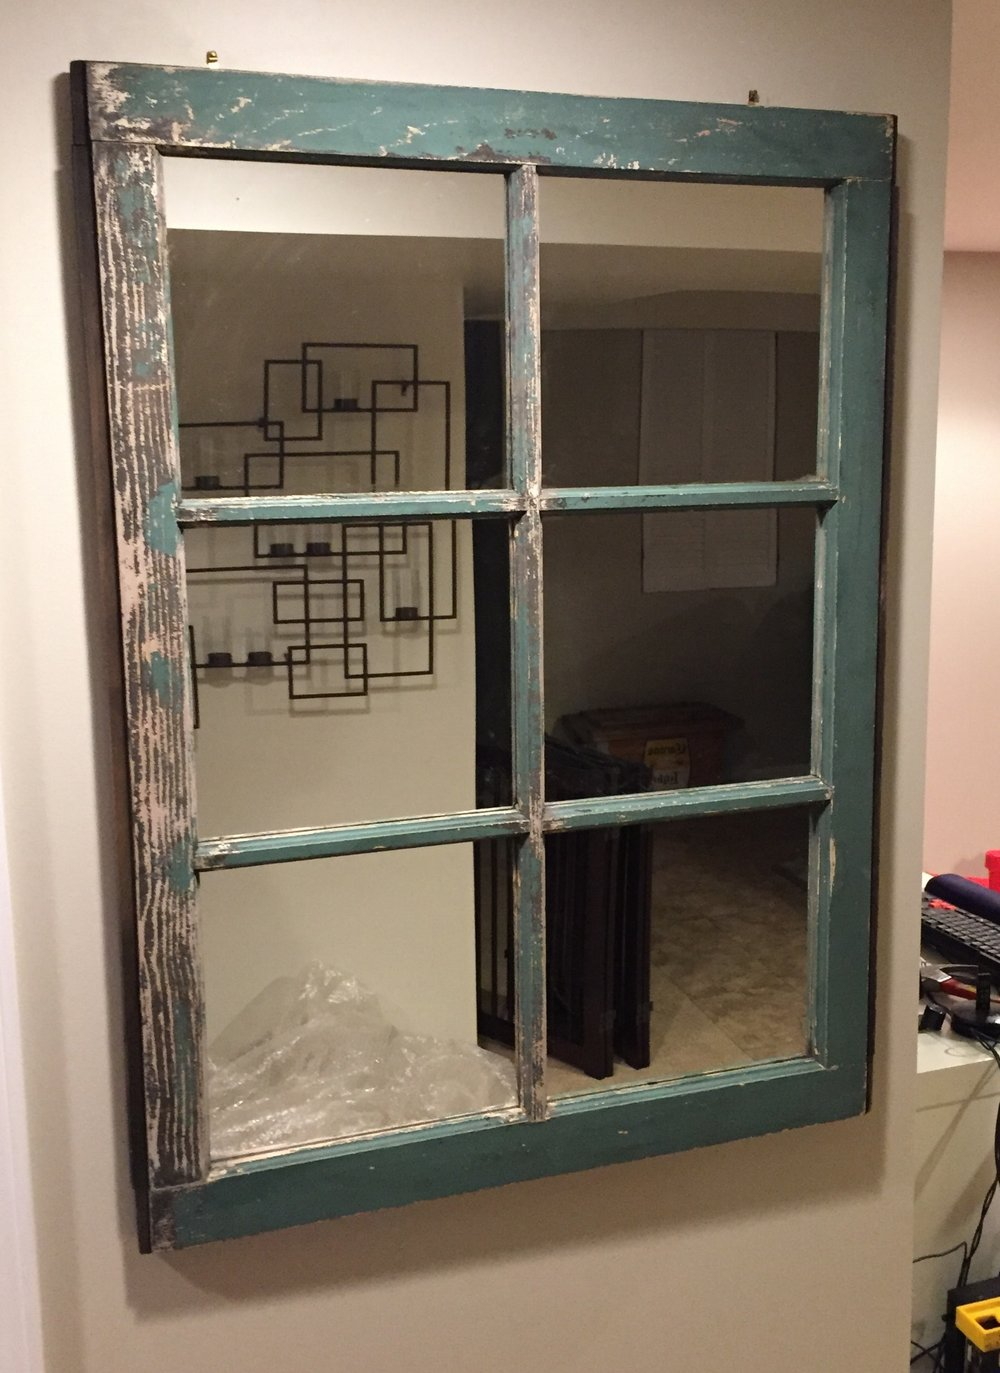 Michelle found this awesome window and turned it into the perfect mirror for her space.